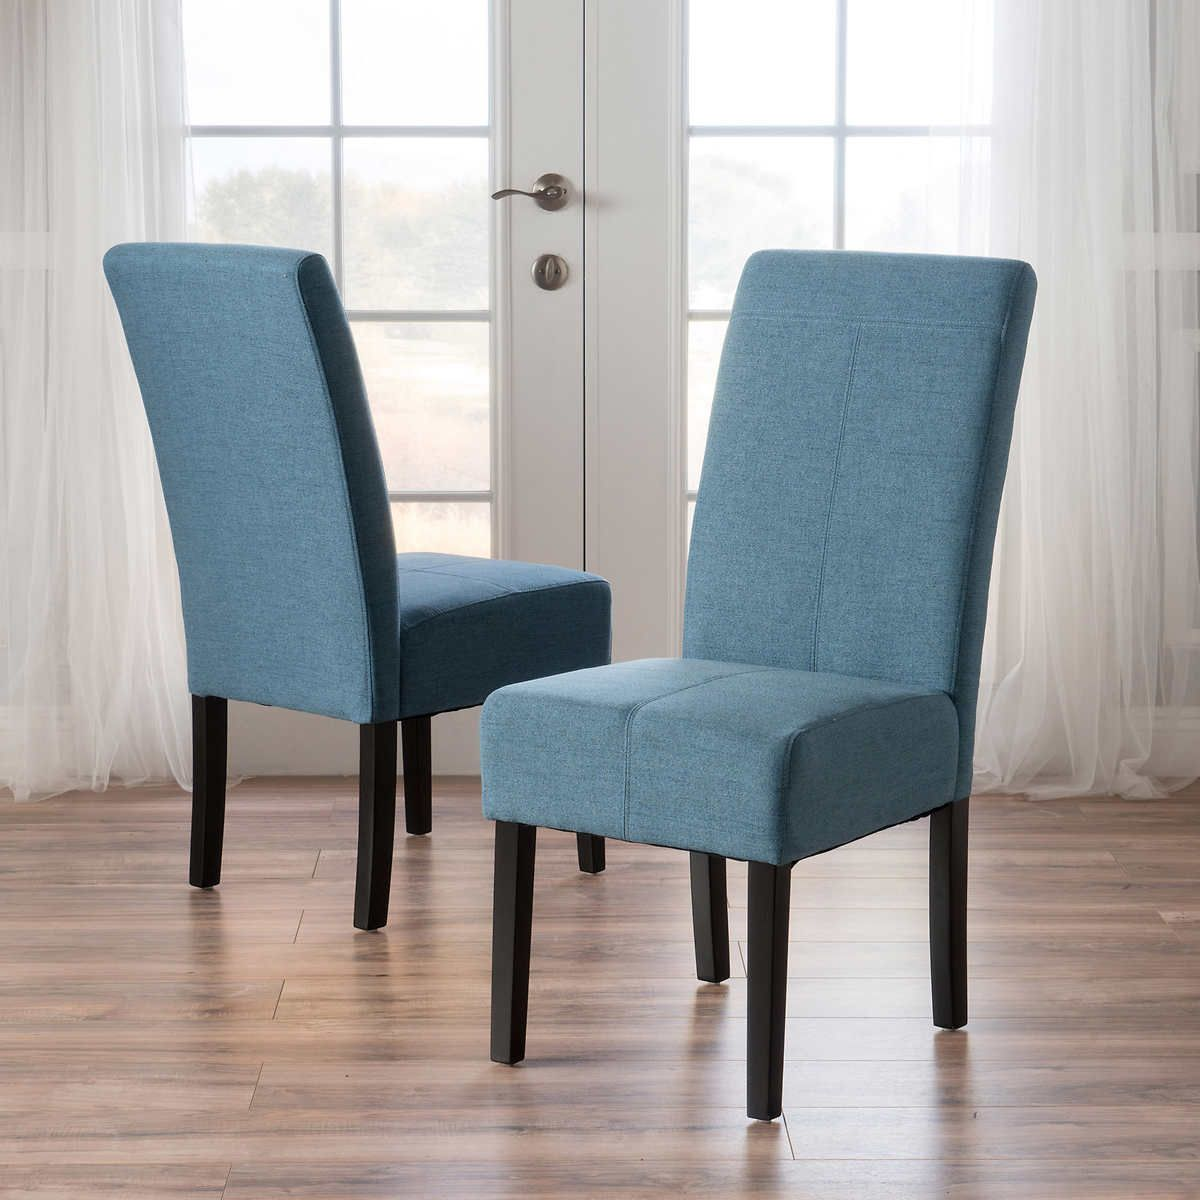 Orleans Dining Chair 2 Pack In 2020 Dining Chairs